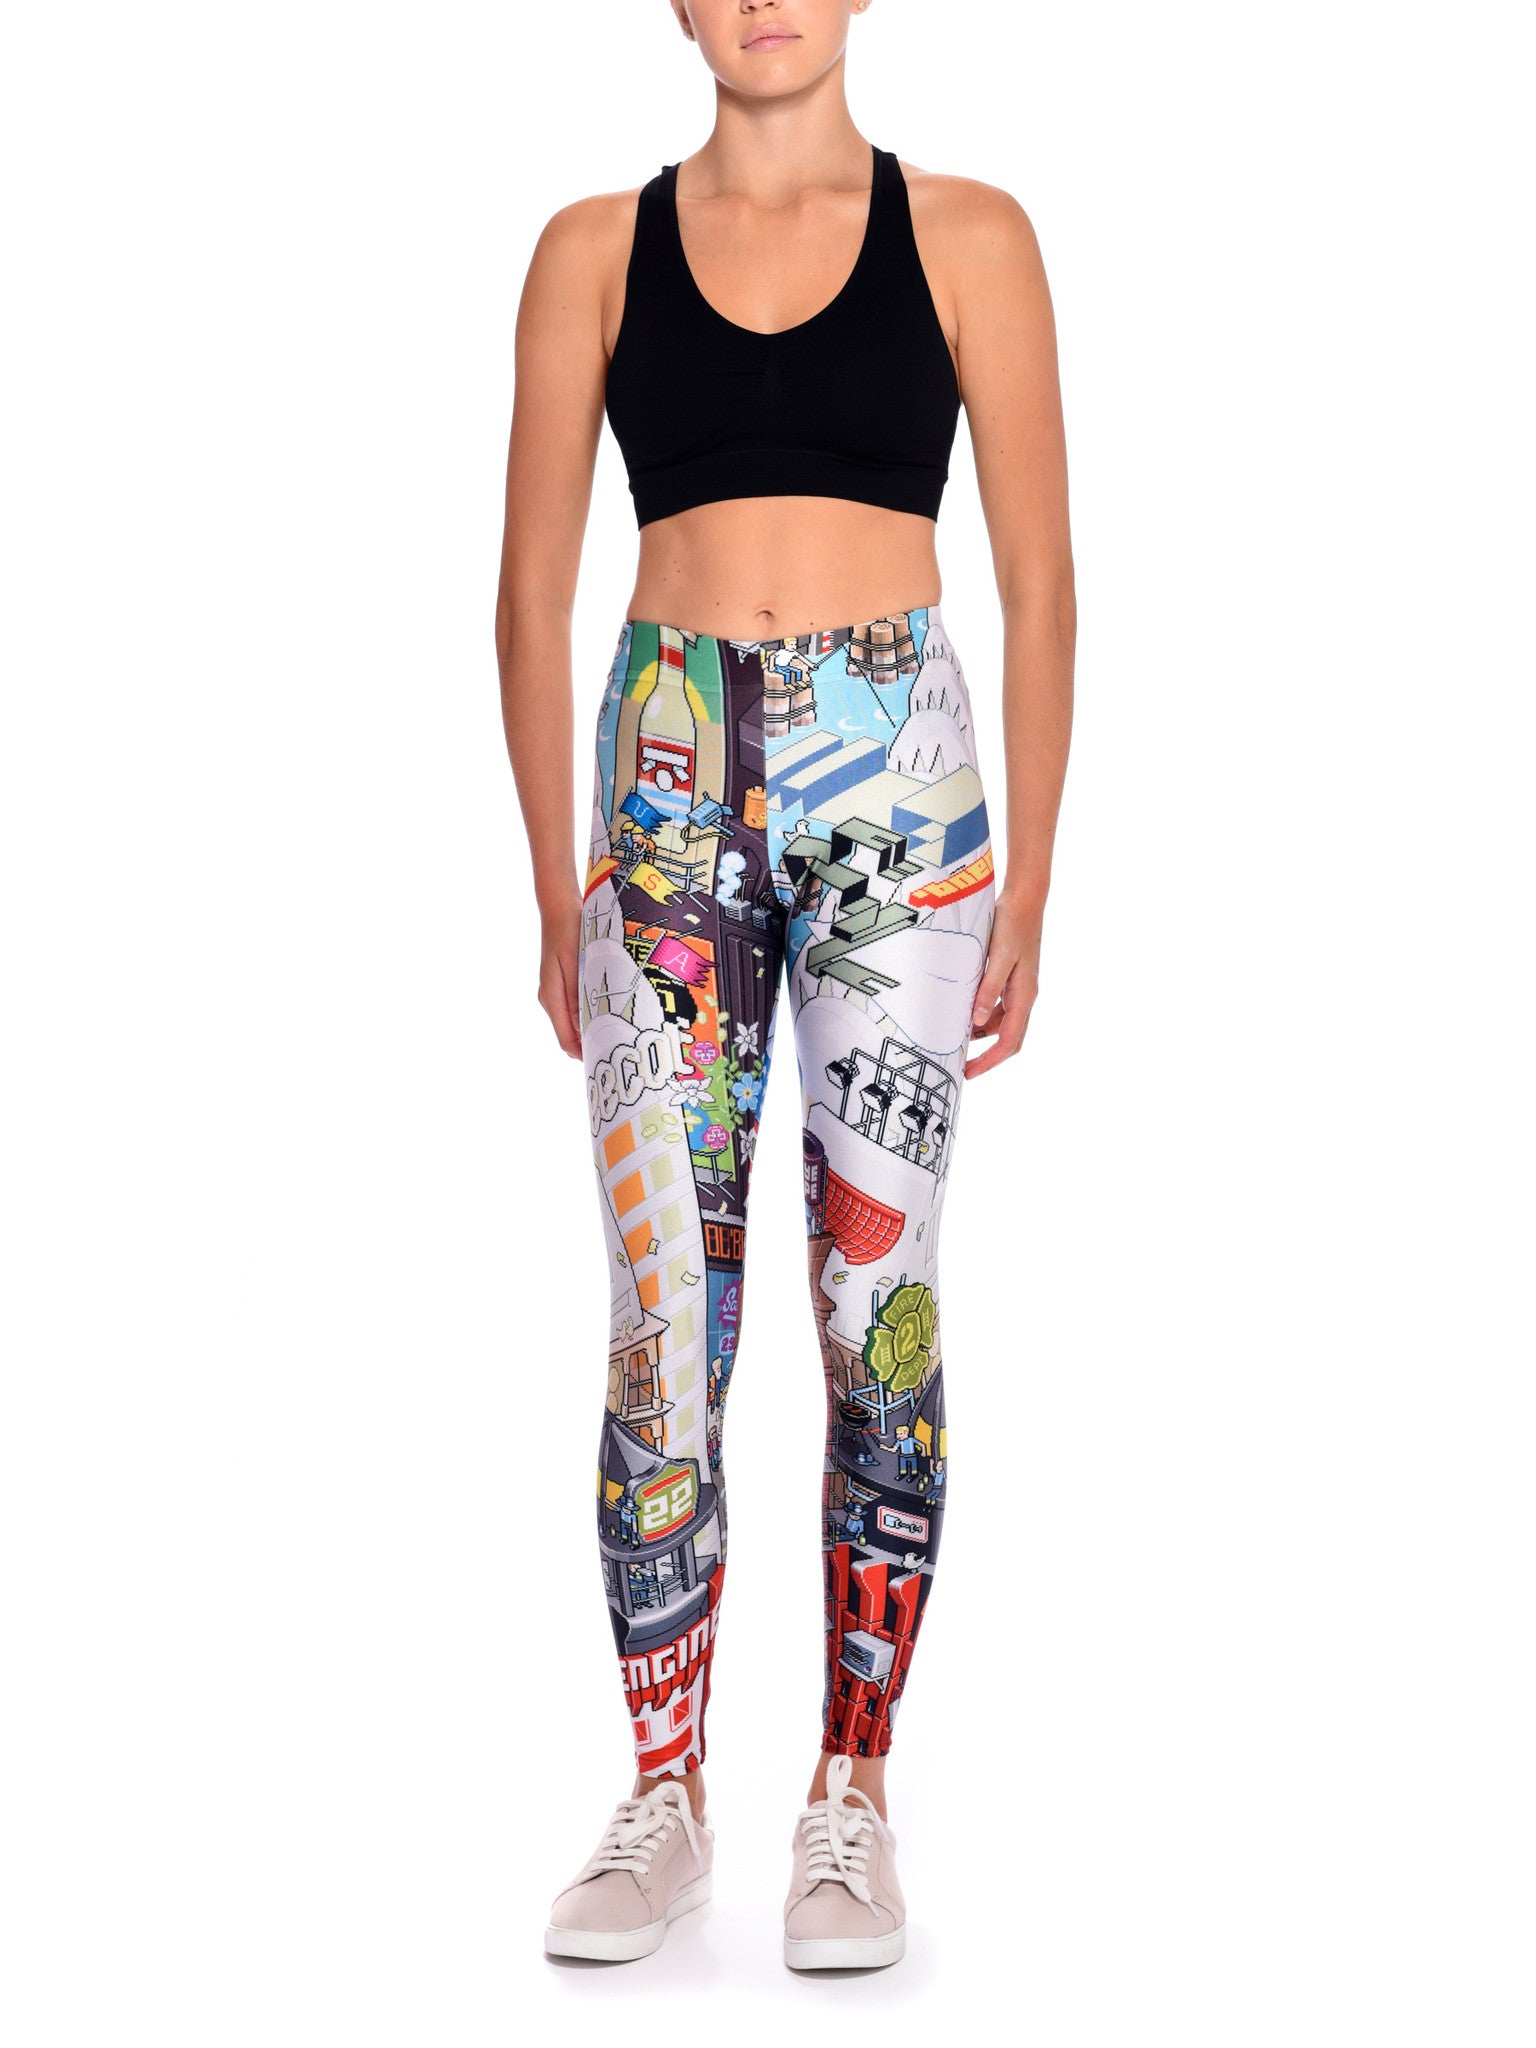 NYC Queen West Leggings - Nuvango Gallery & Goods - 1